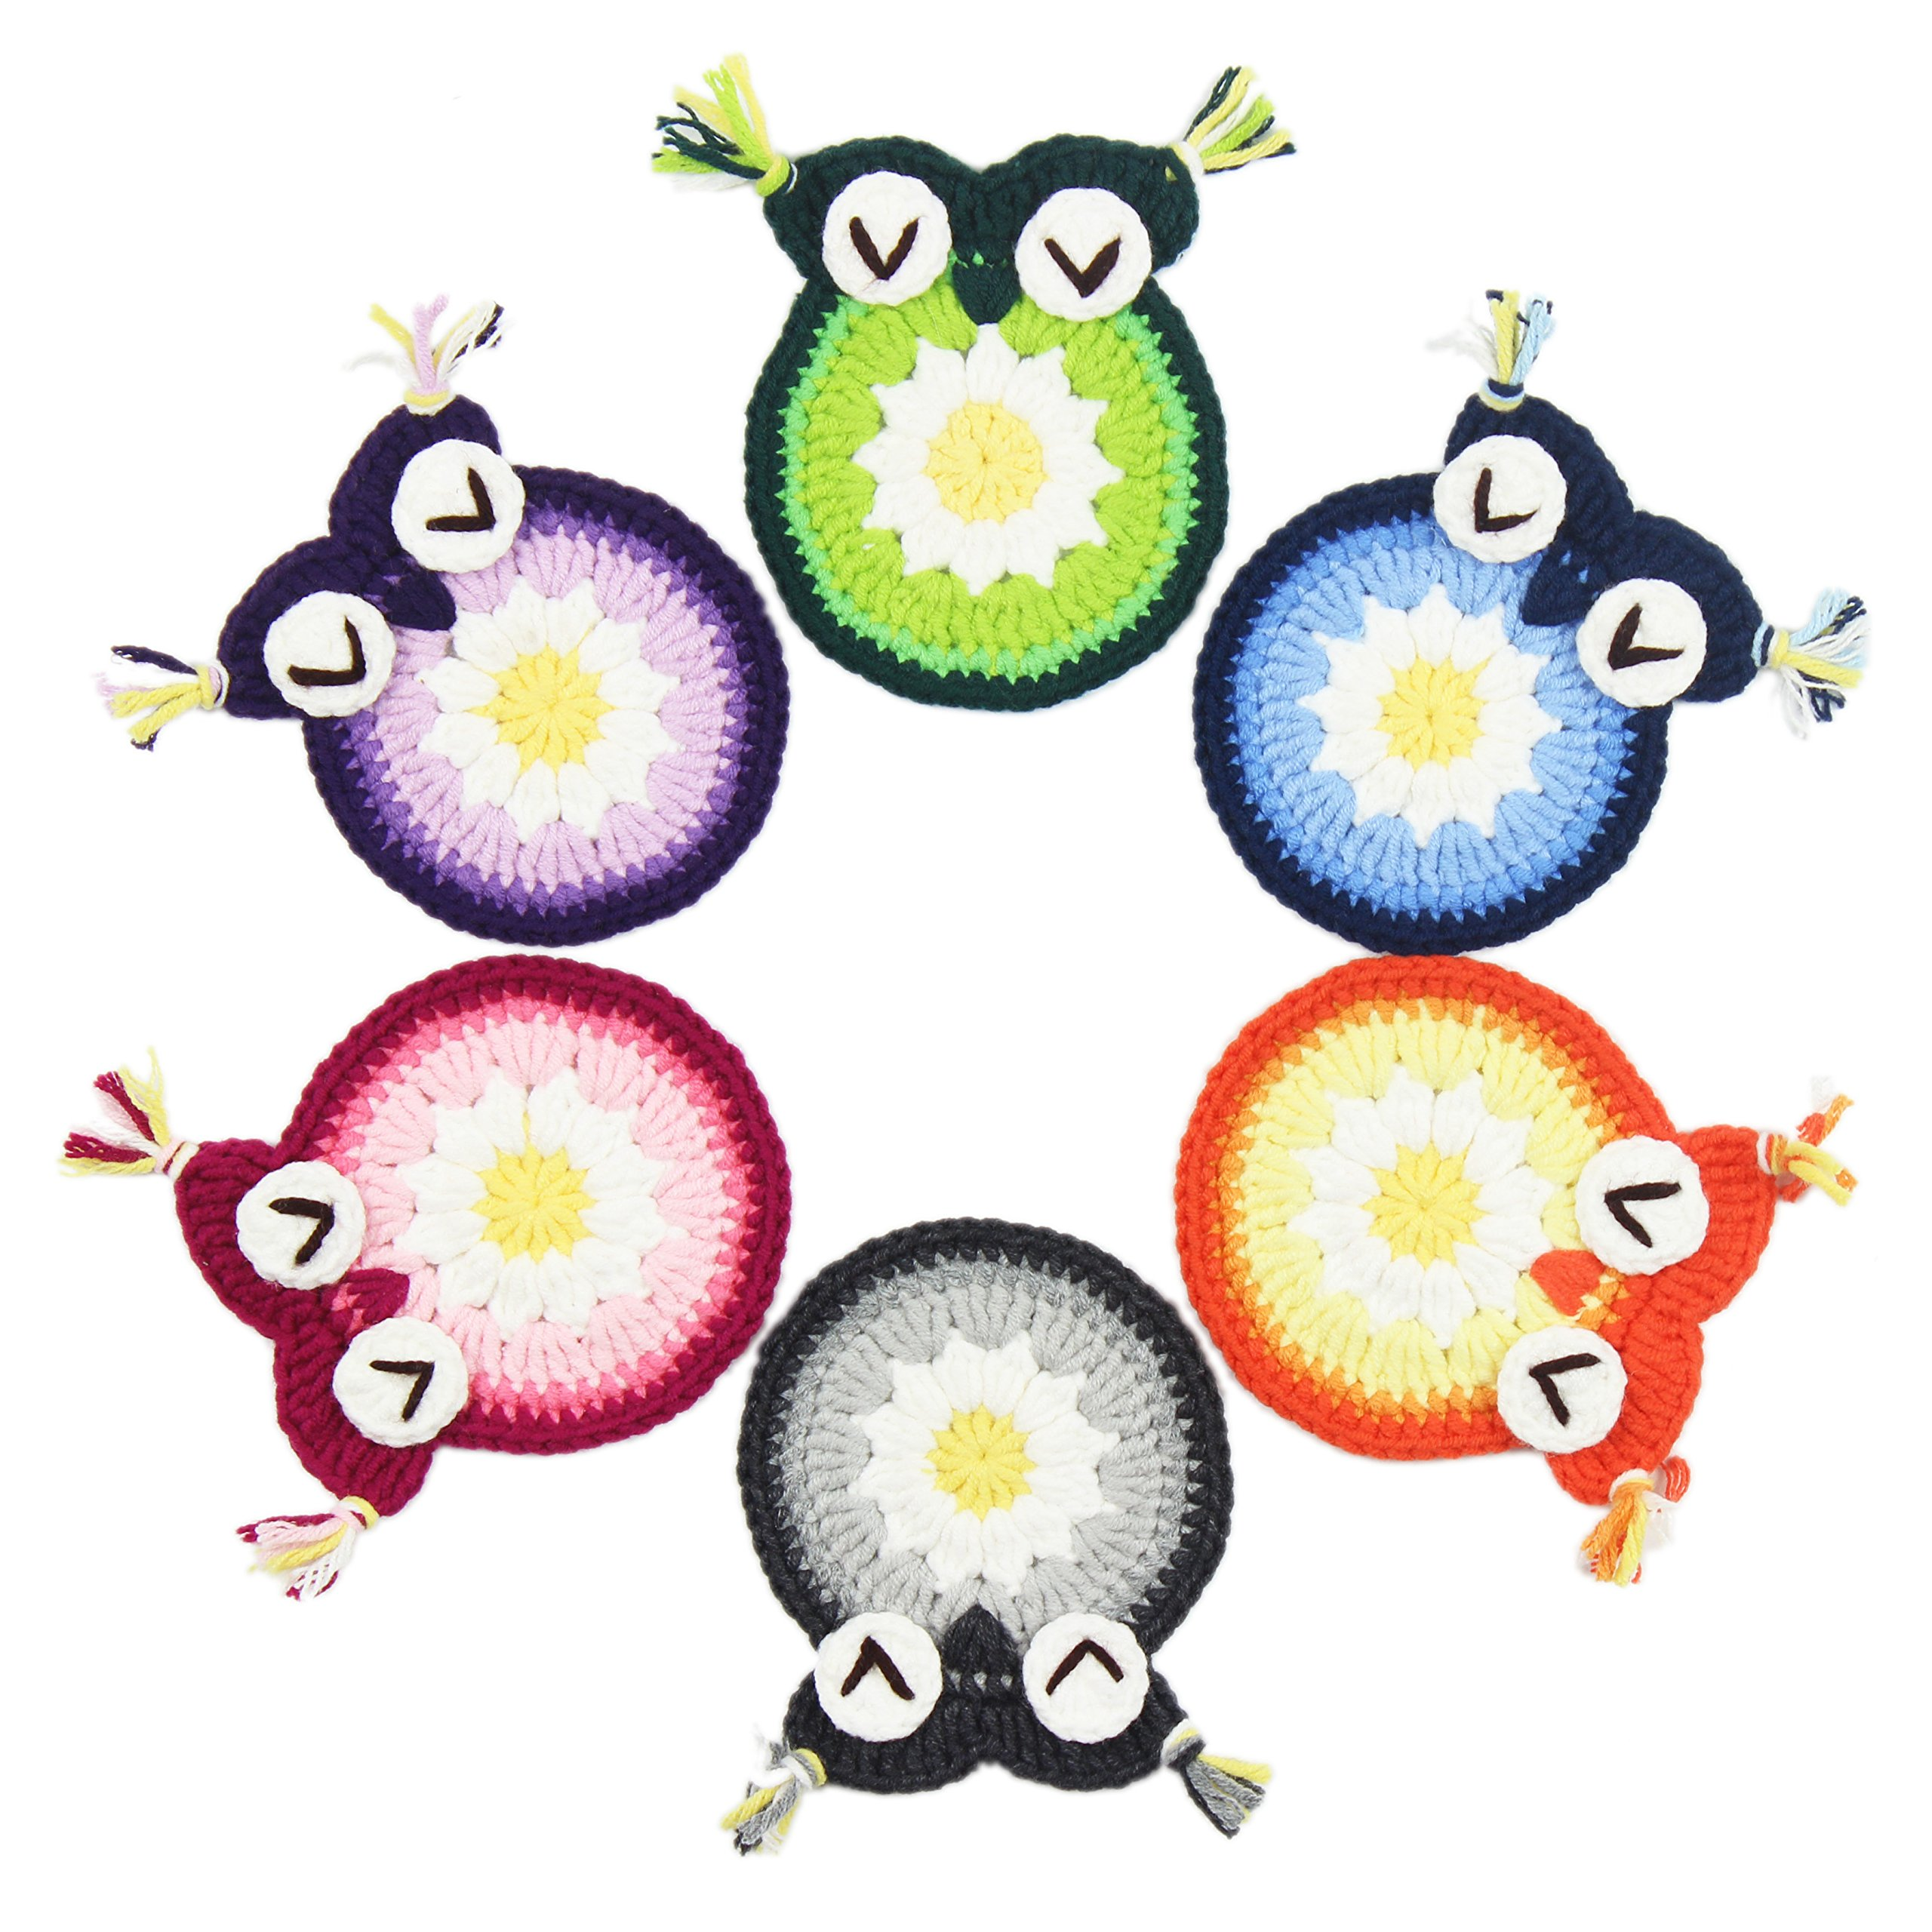 KEPSWET 6PCS Handmade Crochet Cute Owl Coasters Set Cotton Drink Mats Multi Colored Animal Pattern Table Place Mats Doilies Value Pack Set of 6 (3.15x3.15 Inch, Multicolor)